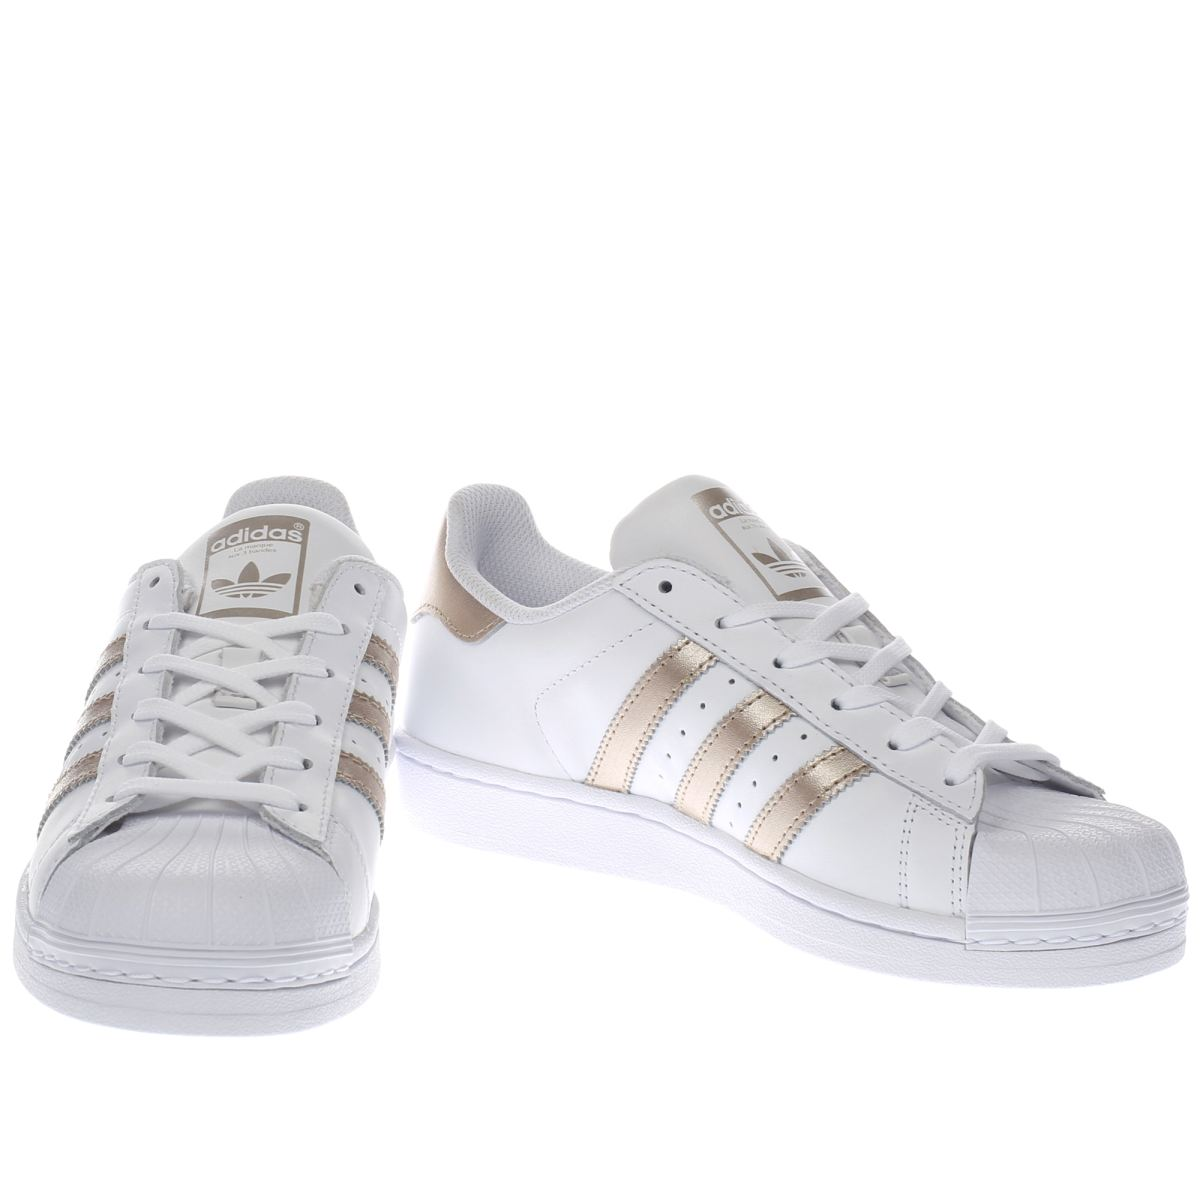 Womens White & Rose Gold Adidas Superstar Trainers | schuh